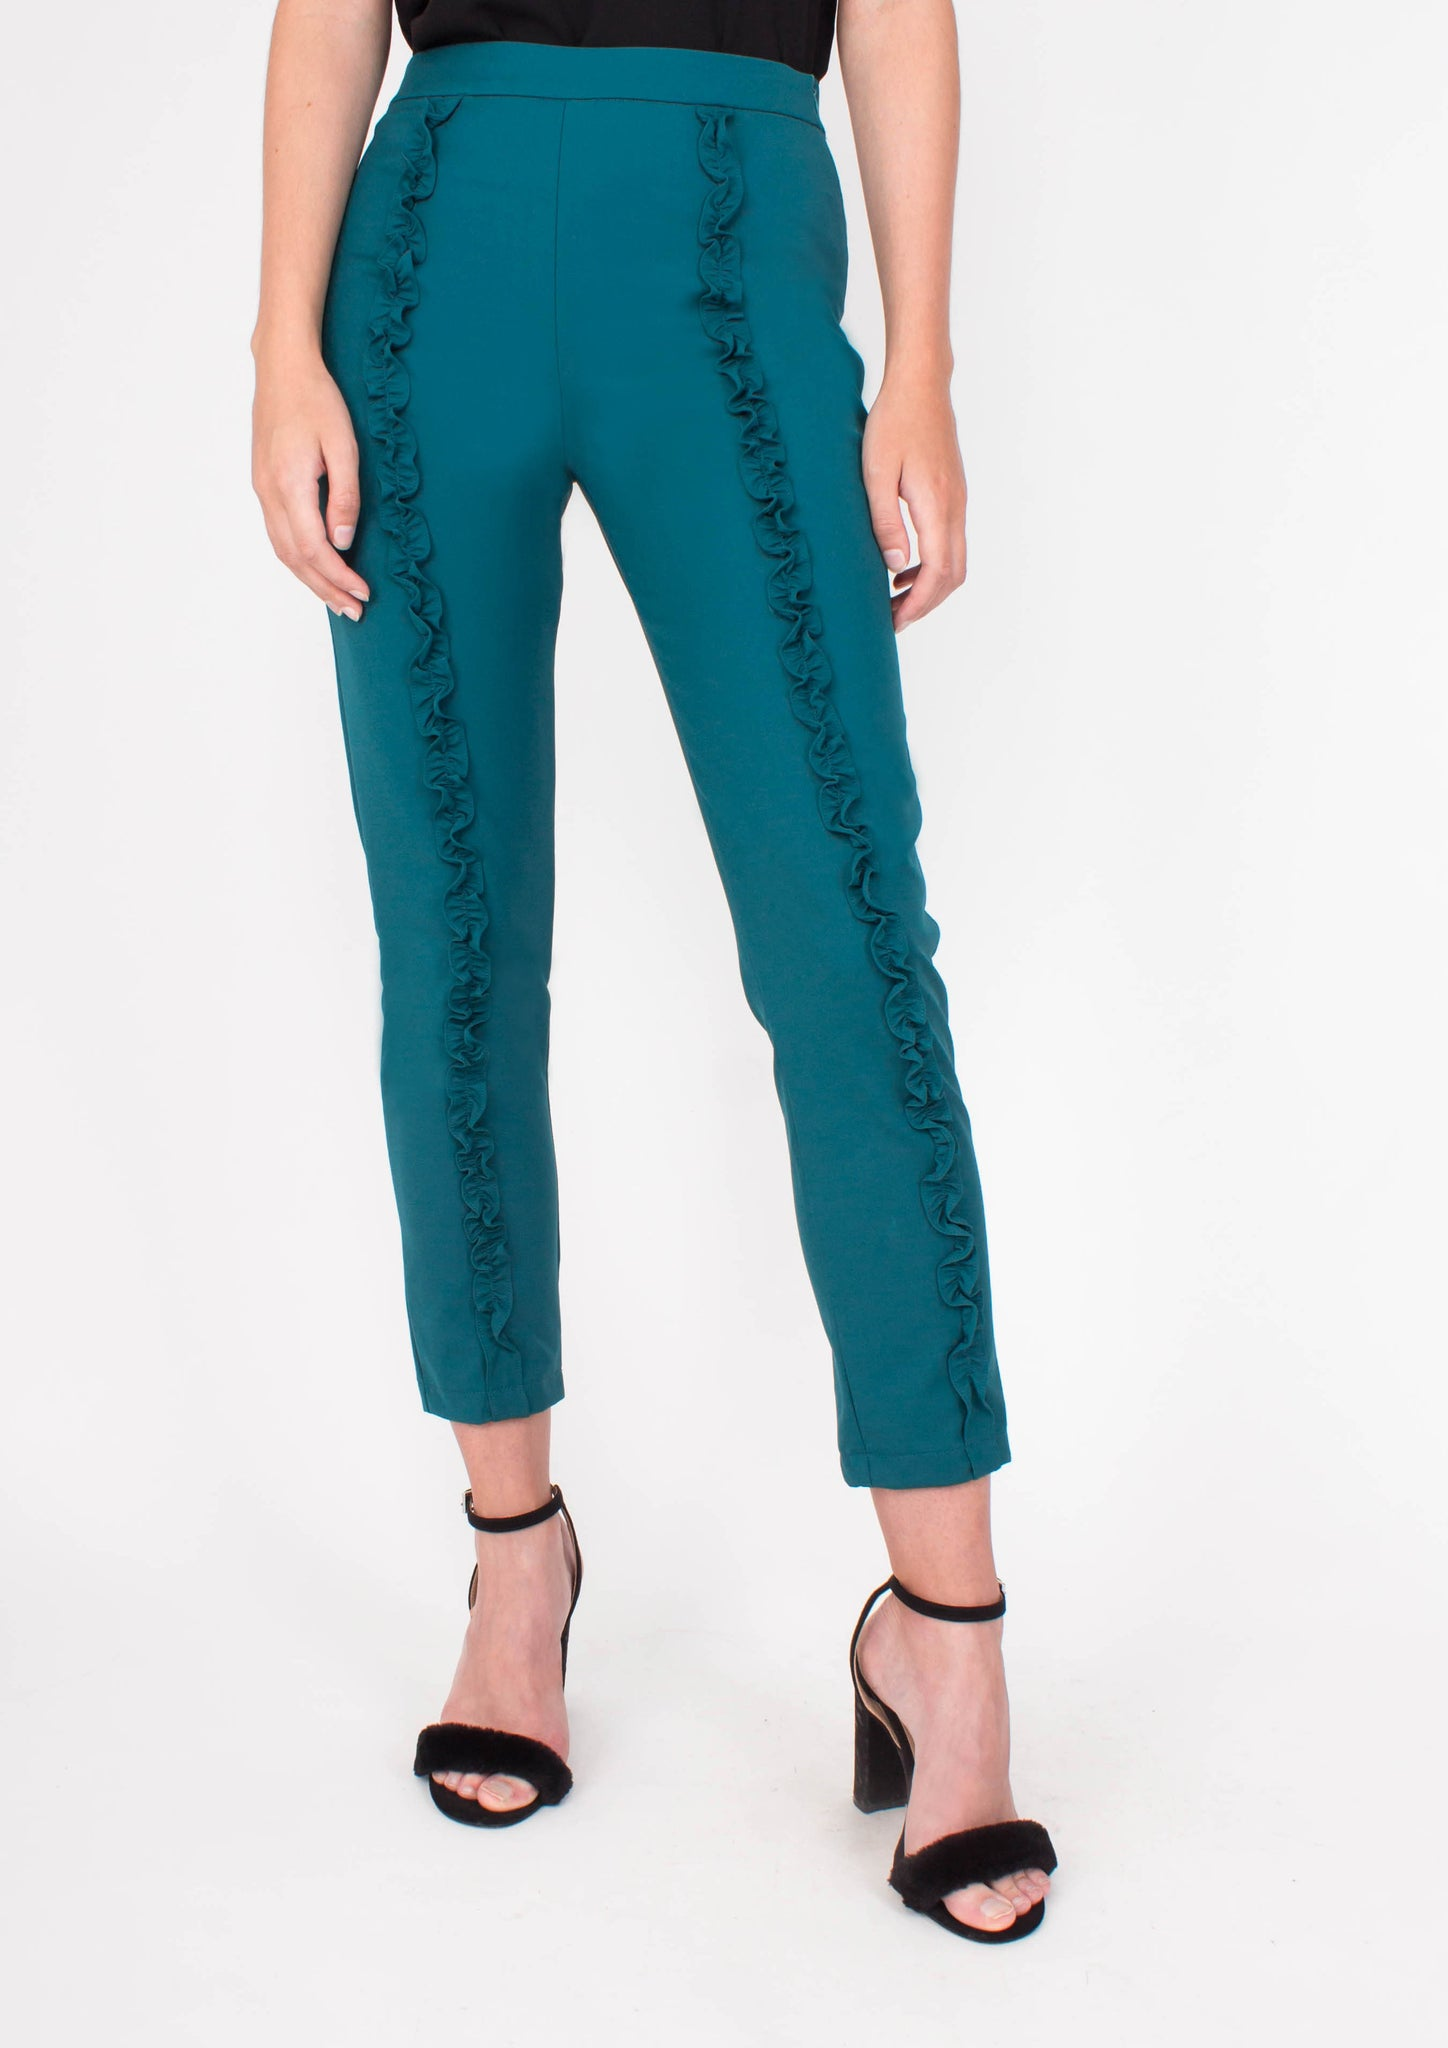 Dream Ruffle Pants (Forest) - Moxie